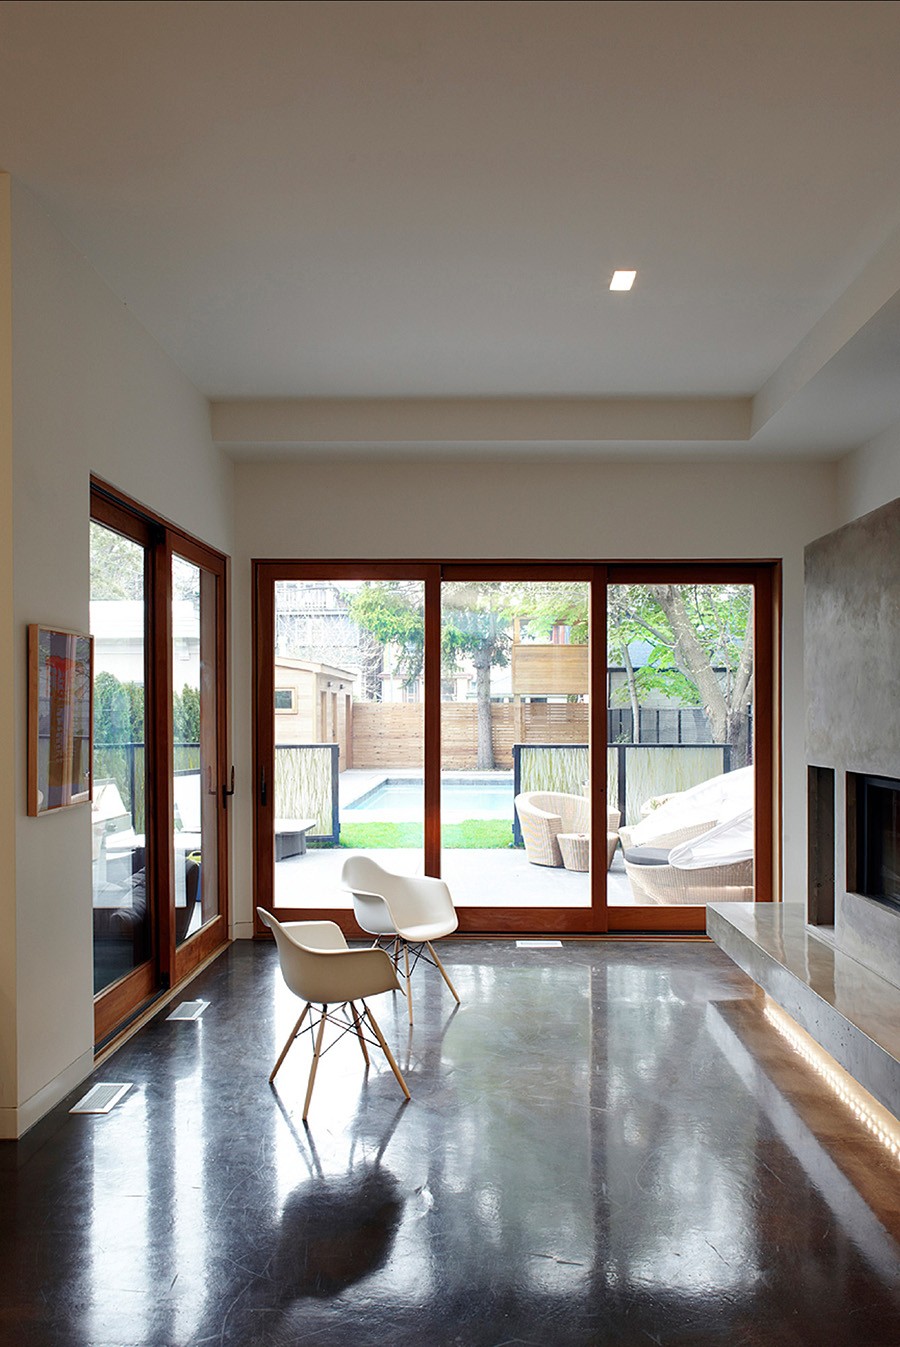 Siting Room with polished concrete floors, multi-panel sliding doors and fireplace placed in a concrete mantel